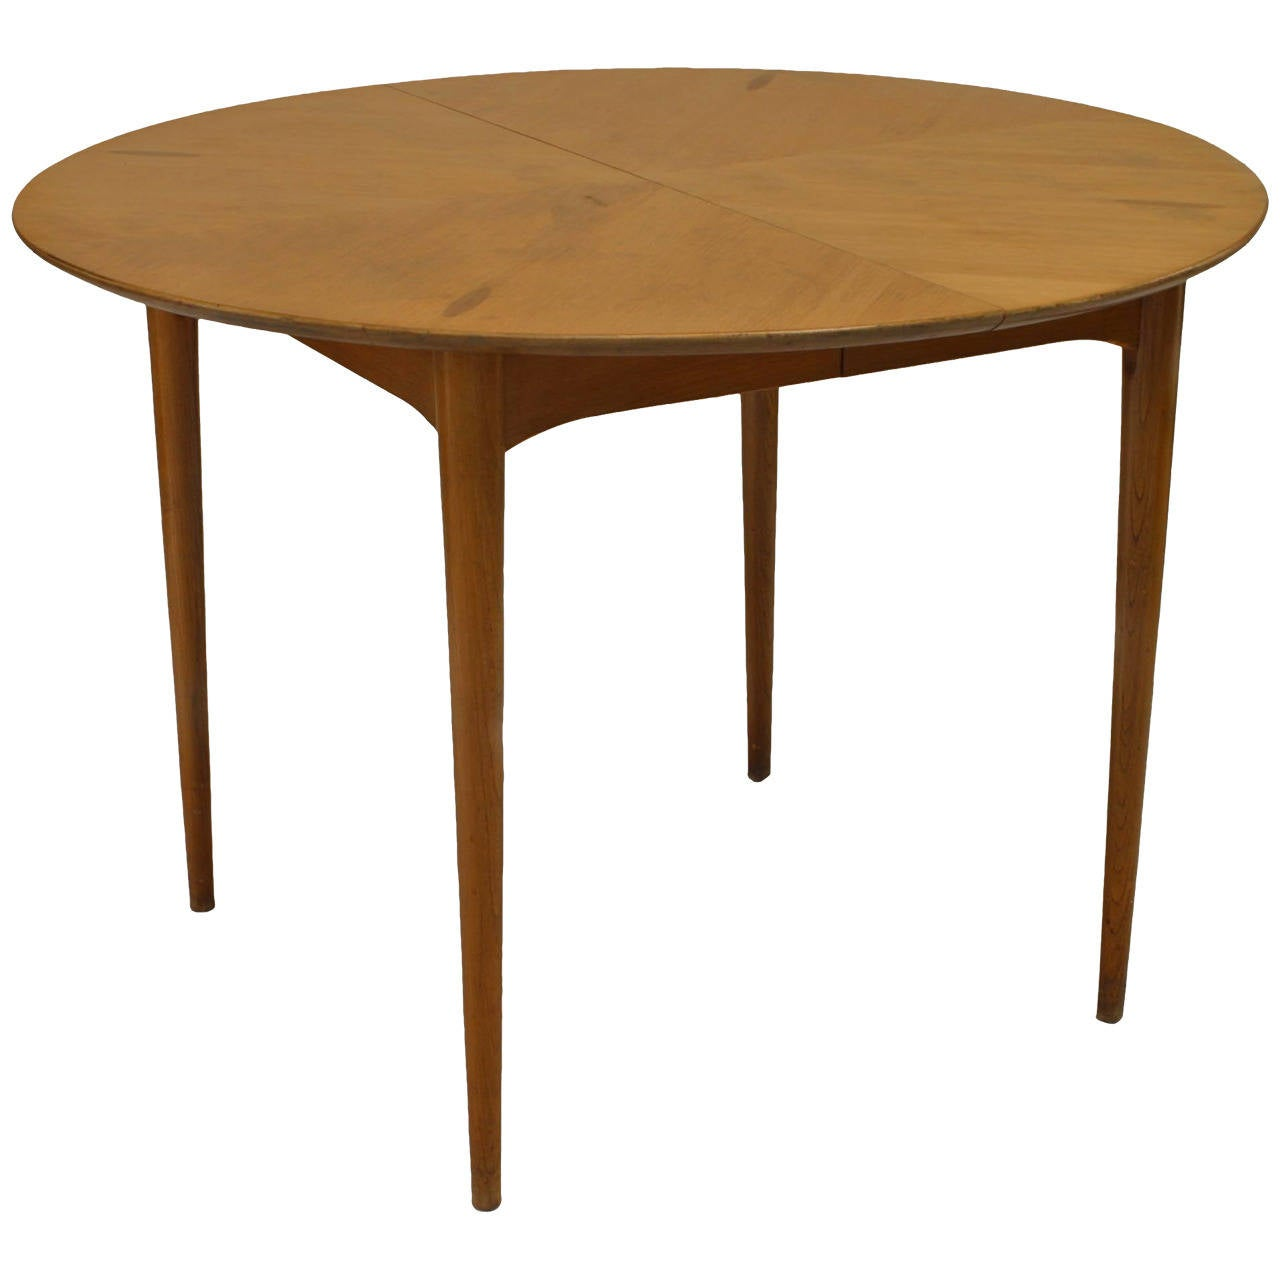 1950s round dining table for sale at 1stdibs for Round dining room tables for sale